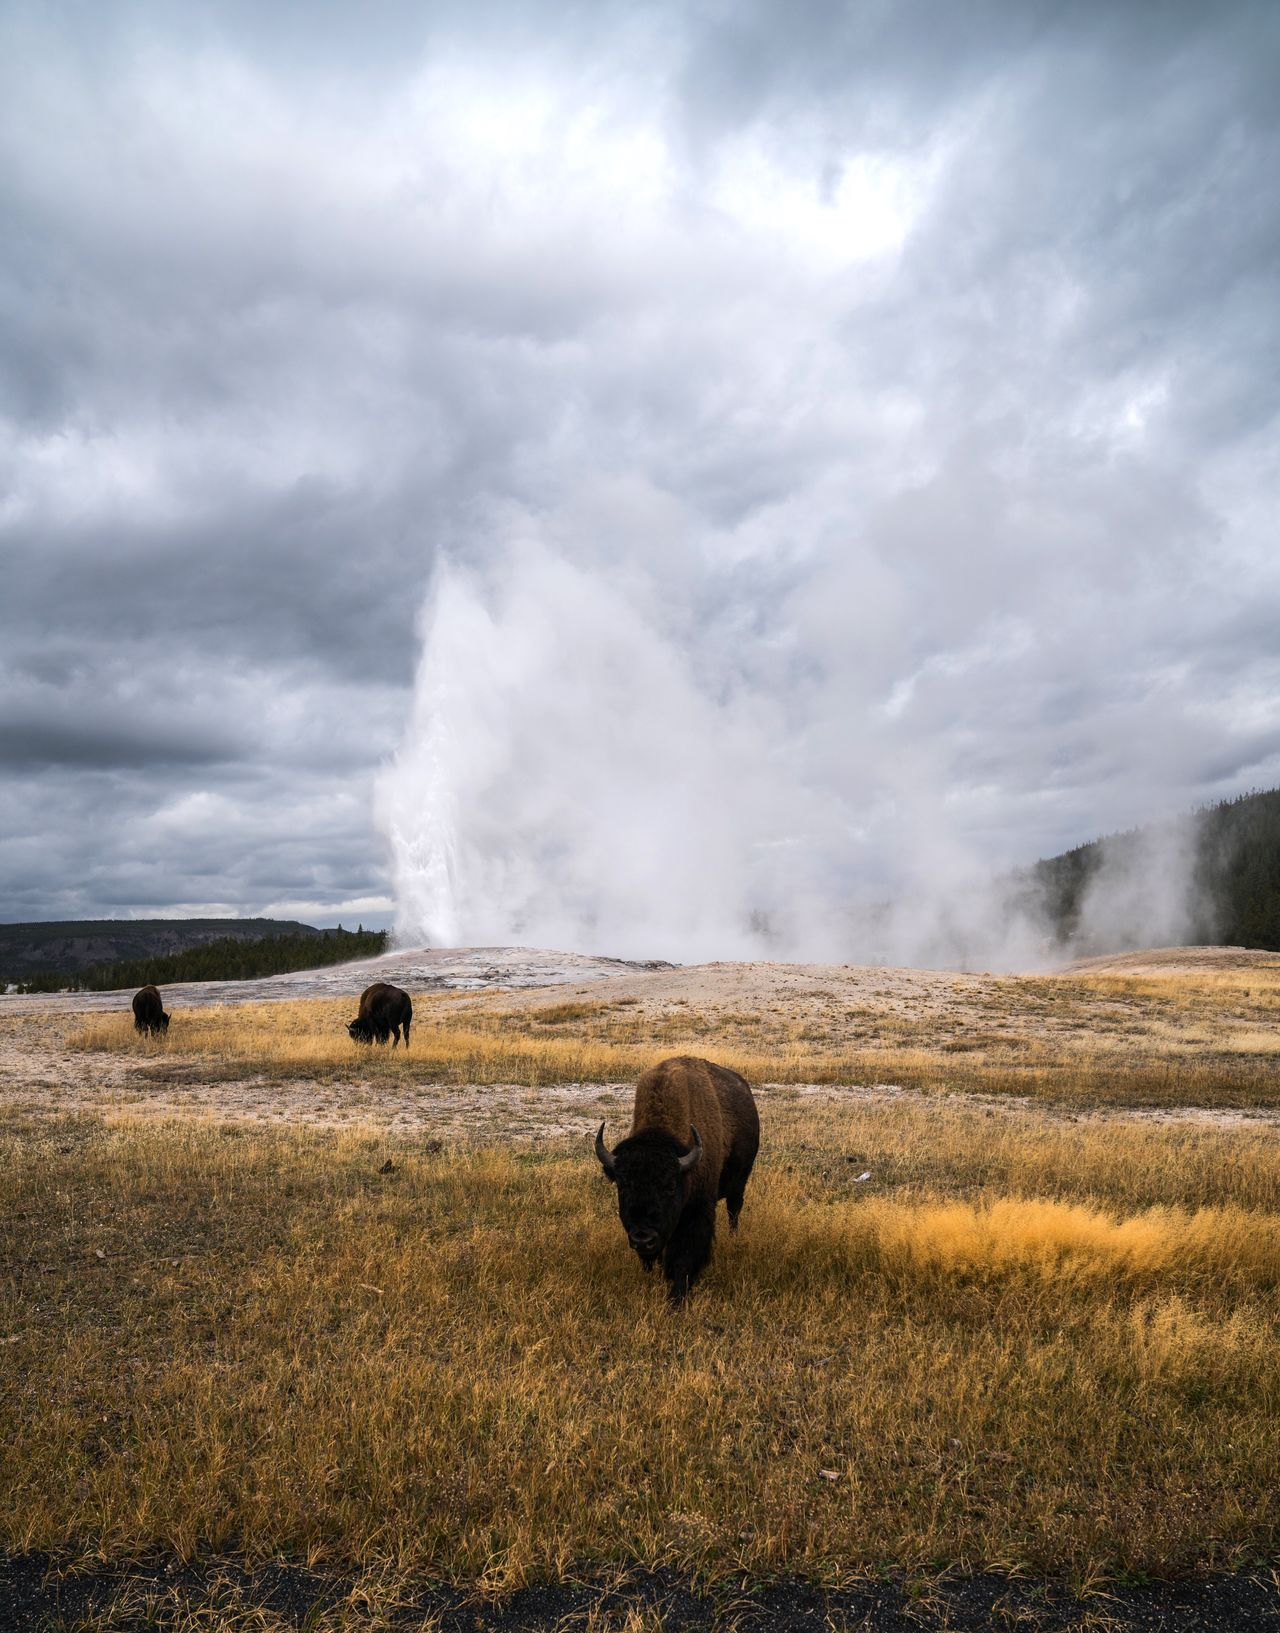 Faithful Distance. Animal Themes Nature Landscape Sky Mammal Field Livestock No People Day Grazing Beauty In Nature Outdoors Grass Cloud - Sky Scenics American Bison Bison Old Faithful Geyser Erupting Yellowstone National Park Yellowstone Wyoming National Park Animals